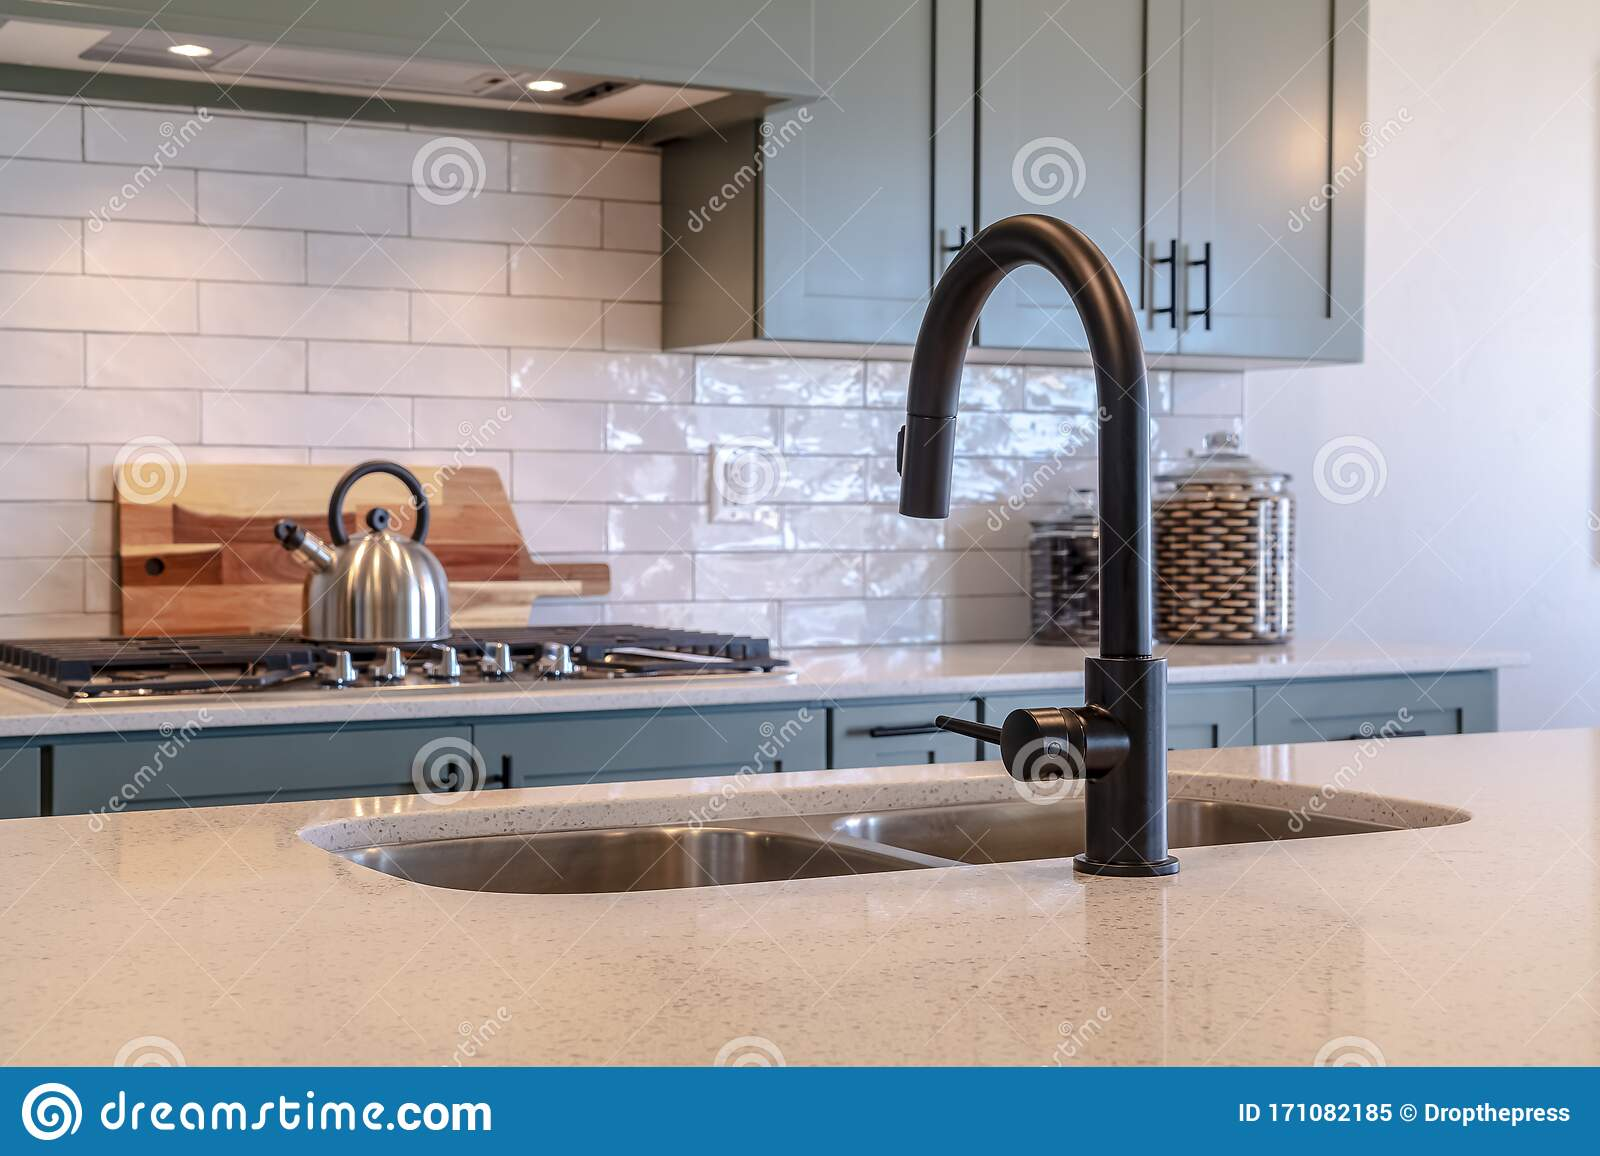 - Black Faucet And Double Bowl Kitchen Island Sink Against Cooktop